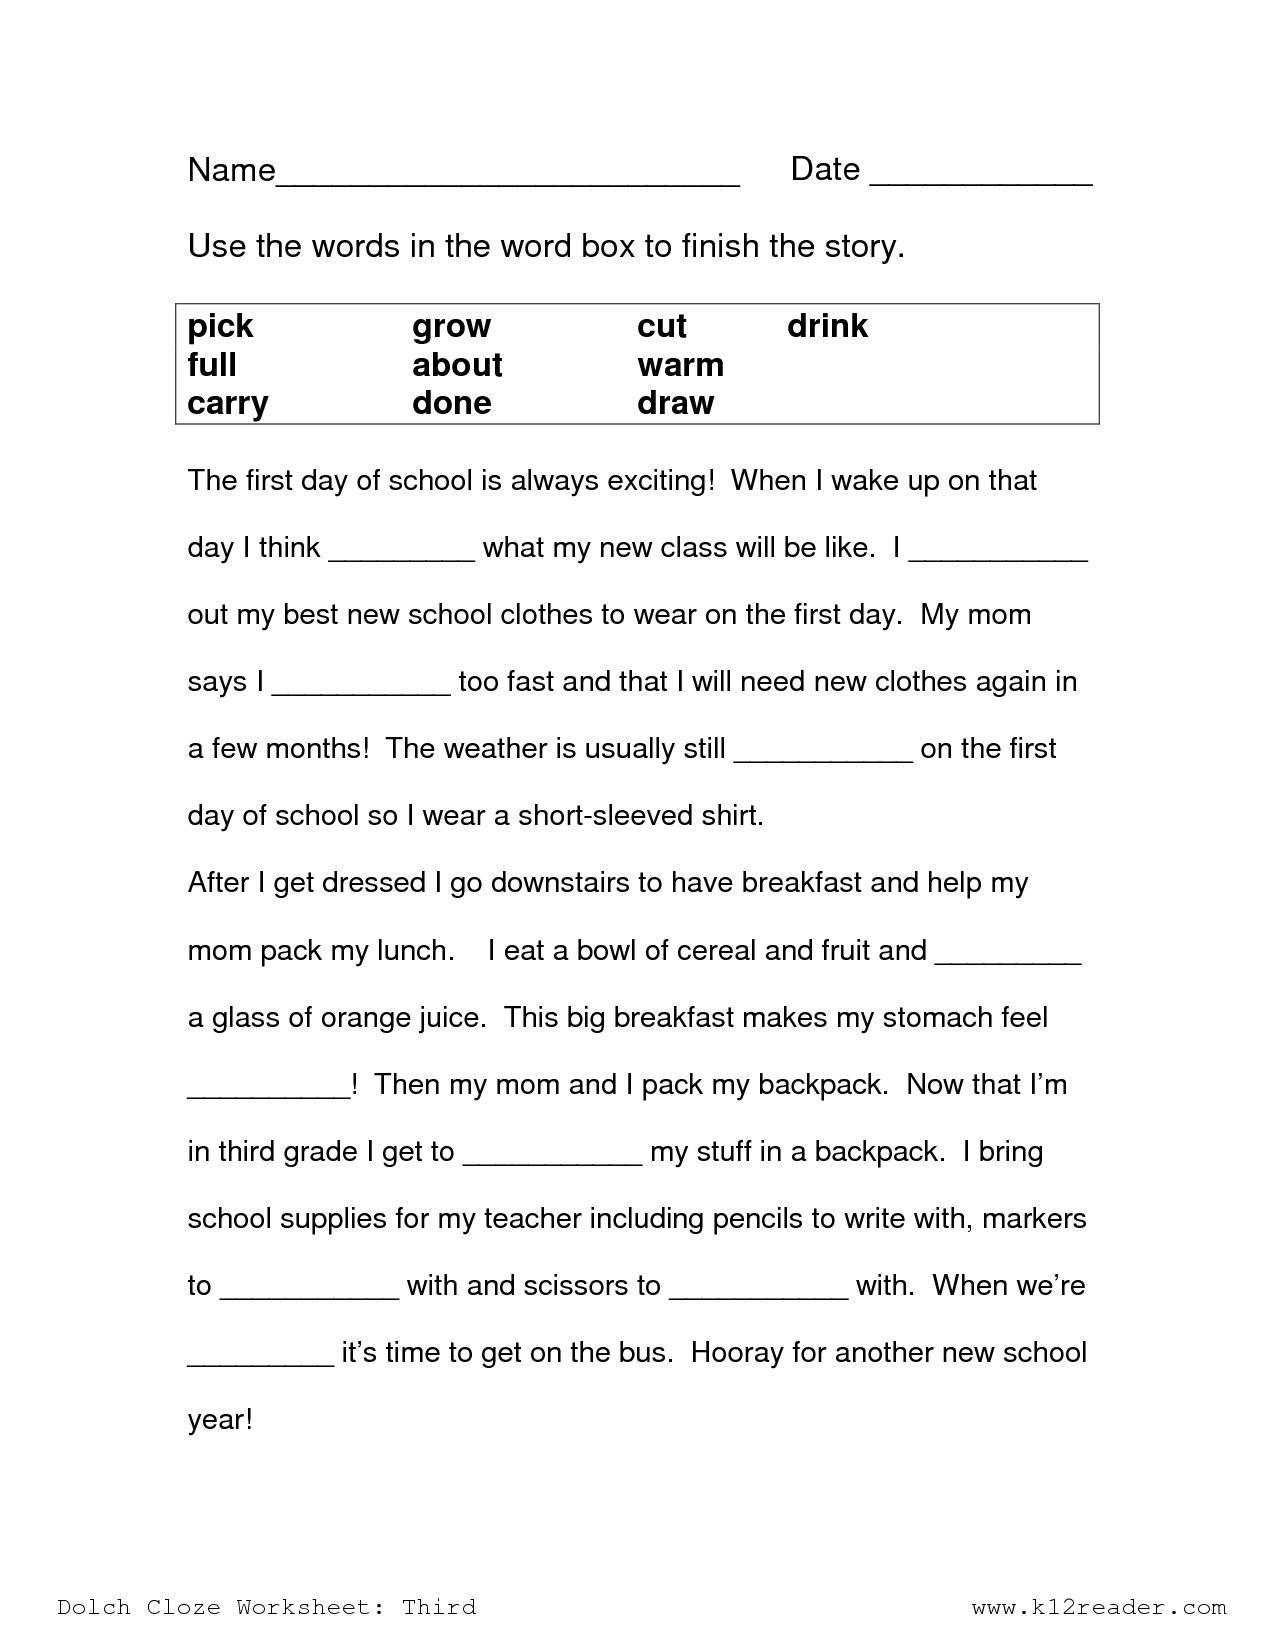 Free Worksheet Free Printable Reading Worksheets For 3rd Grade reading paragraphs for 3rd grade laptuoso free printable worksheets word lists and laptuoso